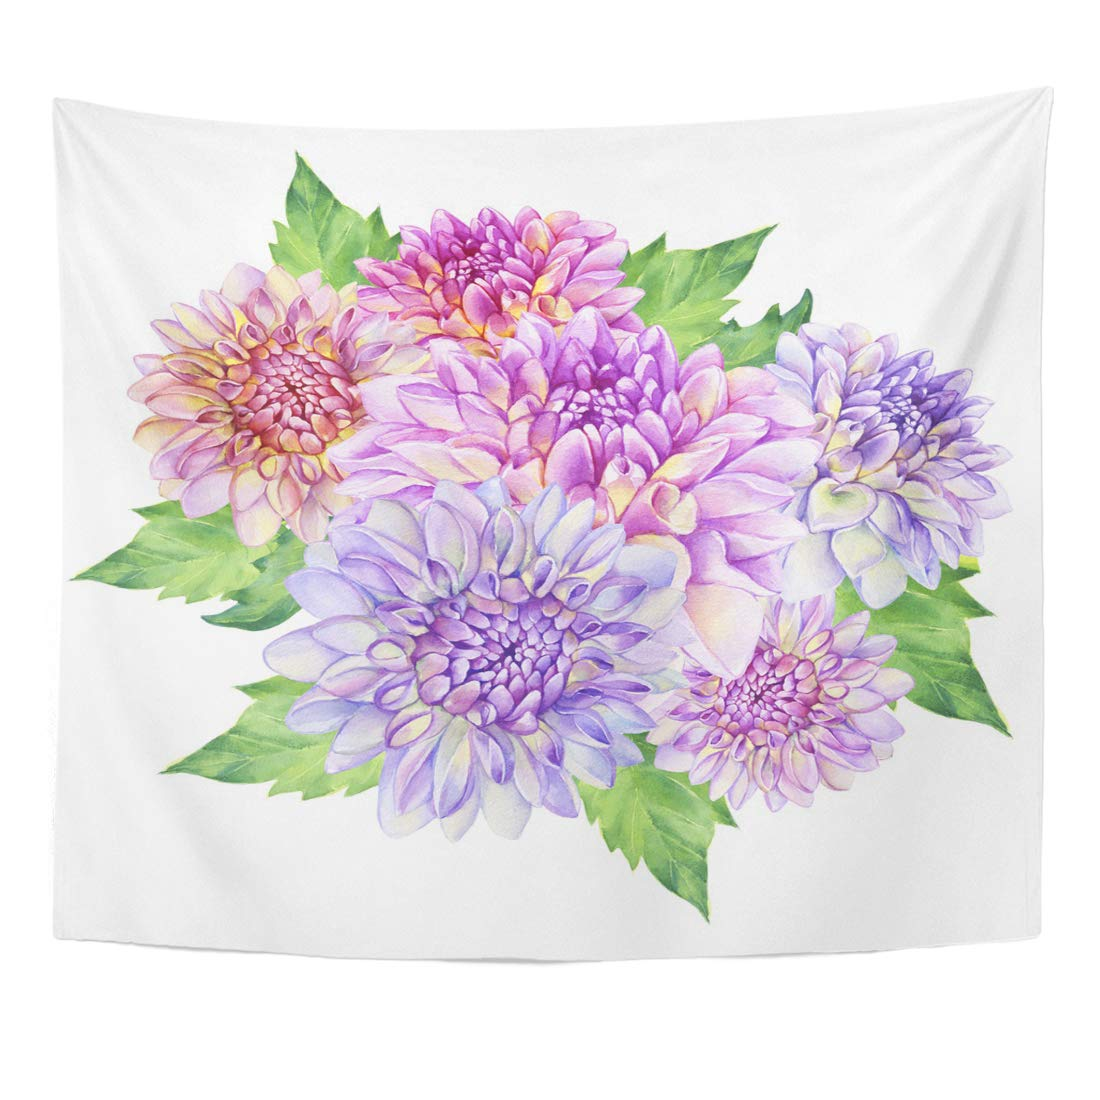 Zealgned Colorful Anemone Bouquet With Purple Dahlia Flower Watercolor Painting White Pink Flowered Wall Art Hanging Tapestry Home Decor For Living Room Bedroom Dorm 51x60 Inch Walmart Com Walmart Com